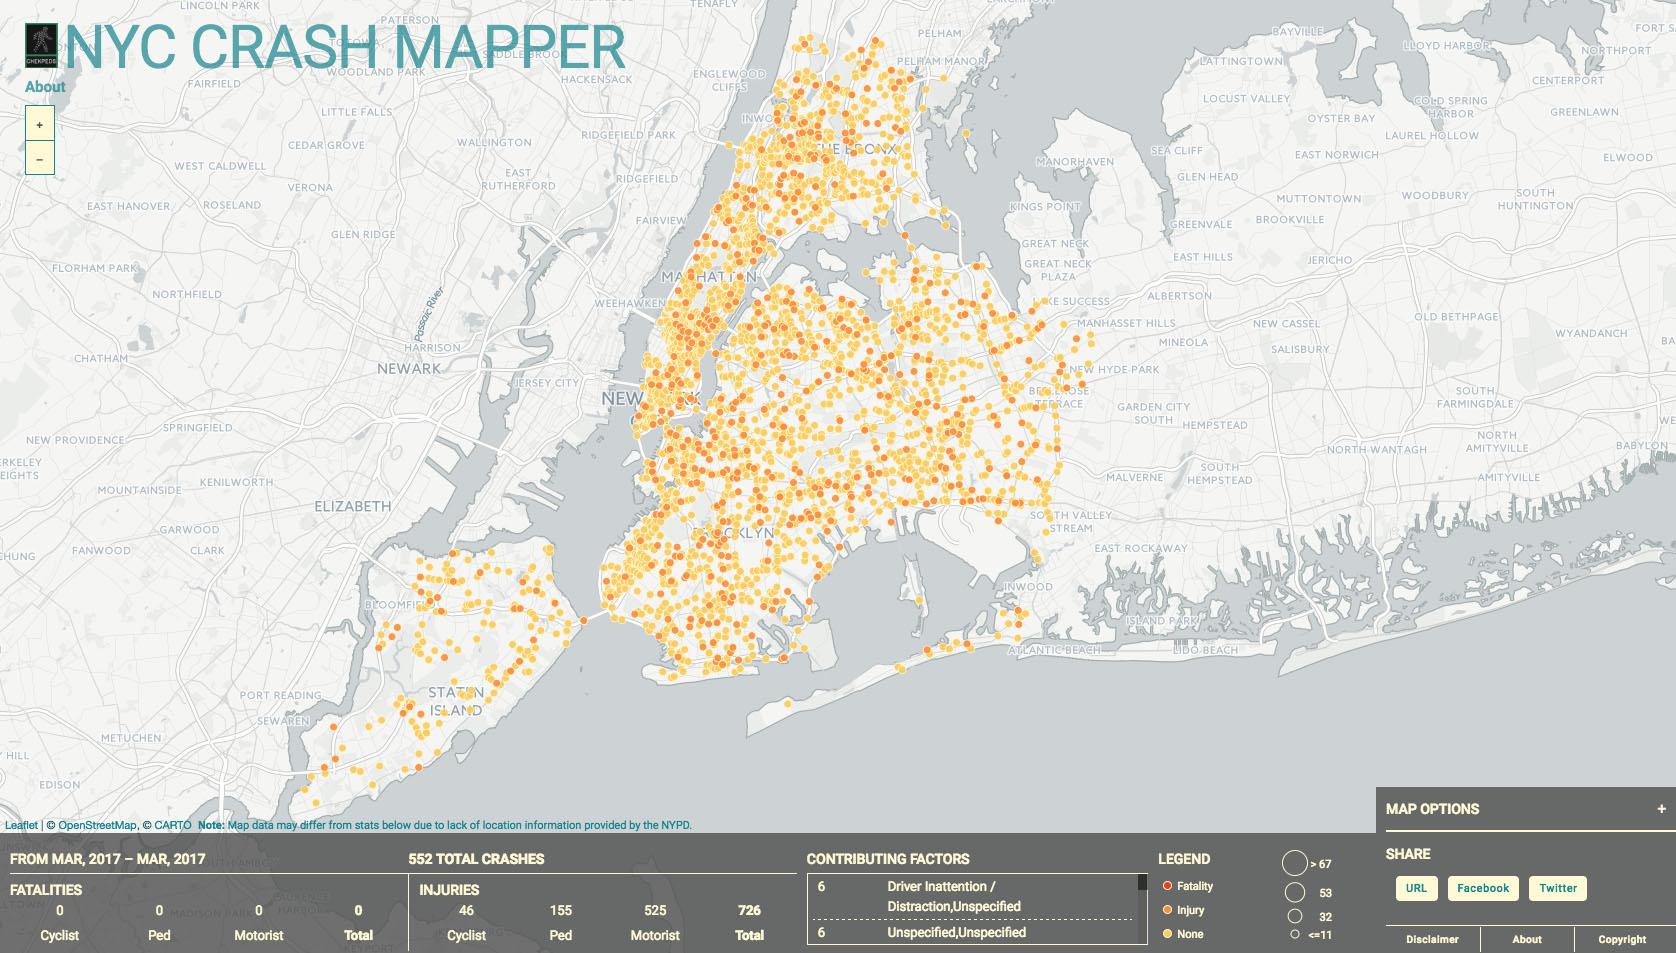 nyc-crash-mapper02.jpg